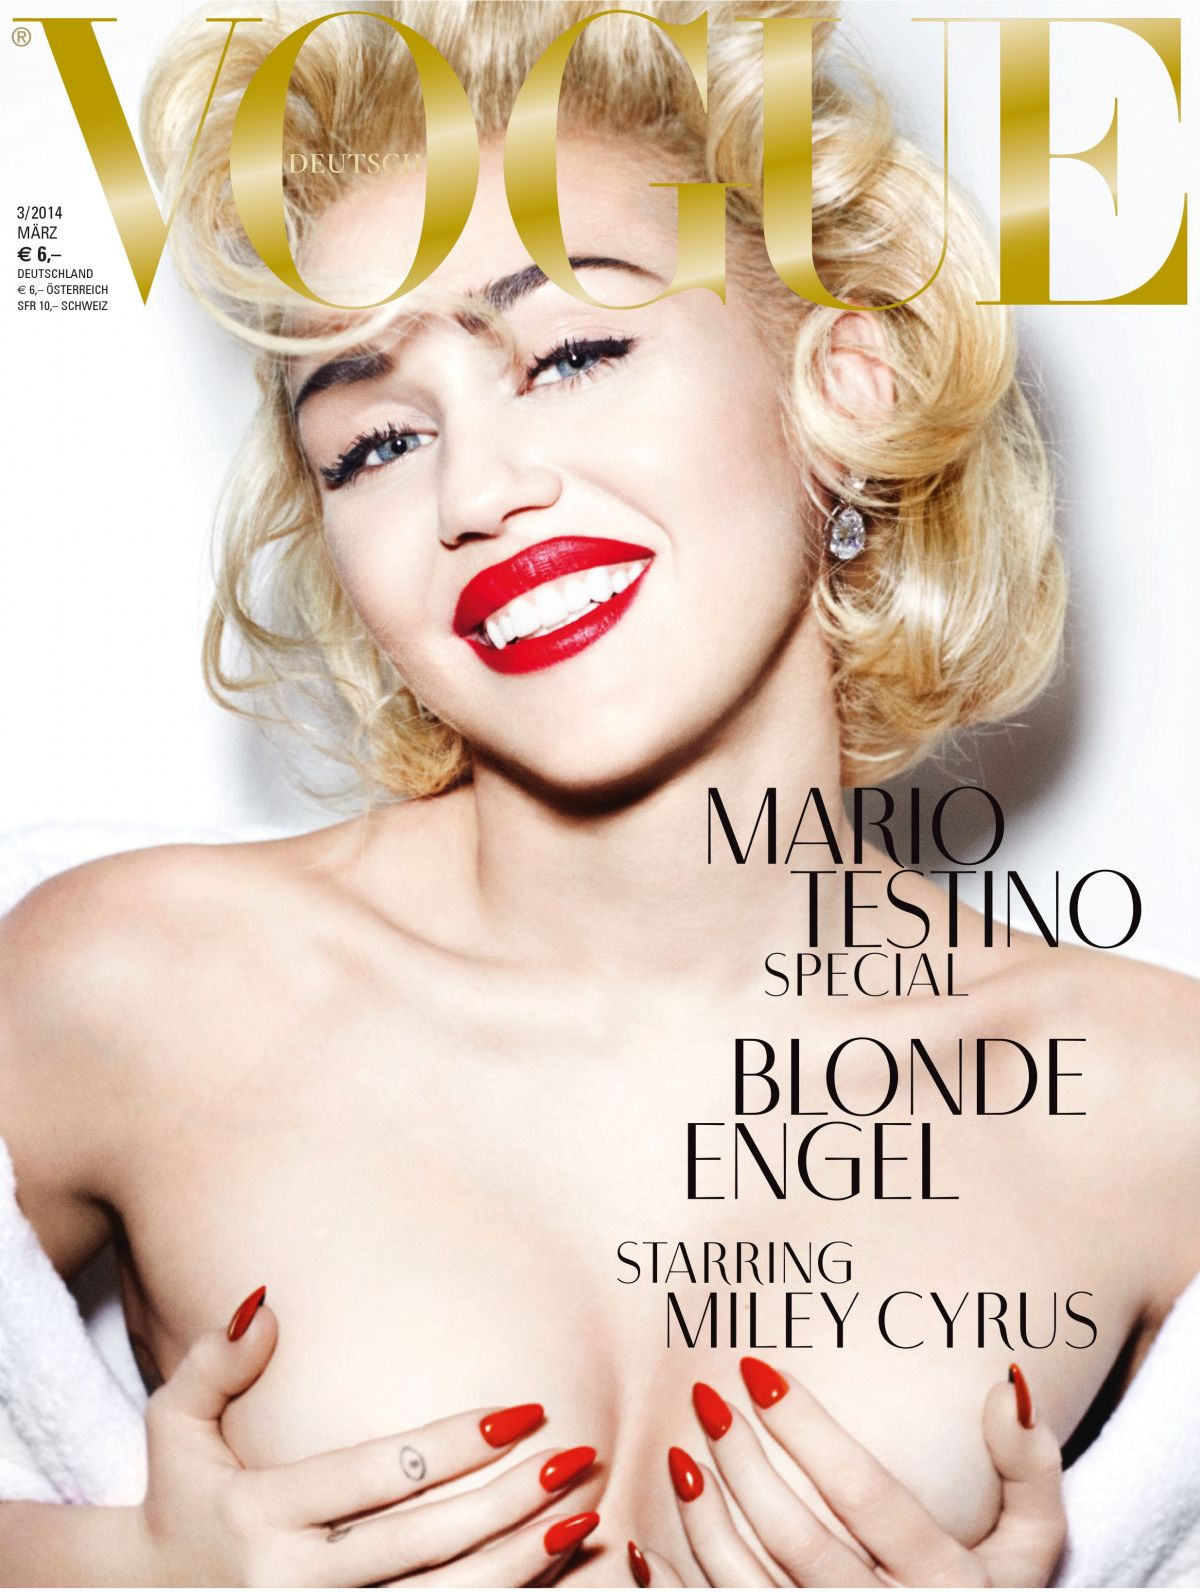 miley-cyrus-on-the-cover-of-vogue-magazine-germany-march-2014-issue_1